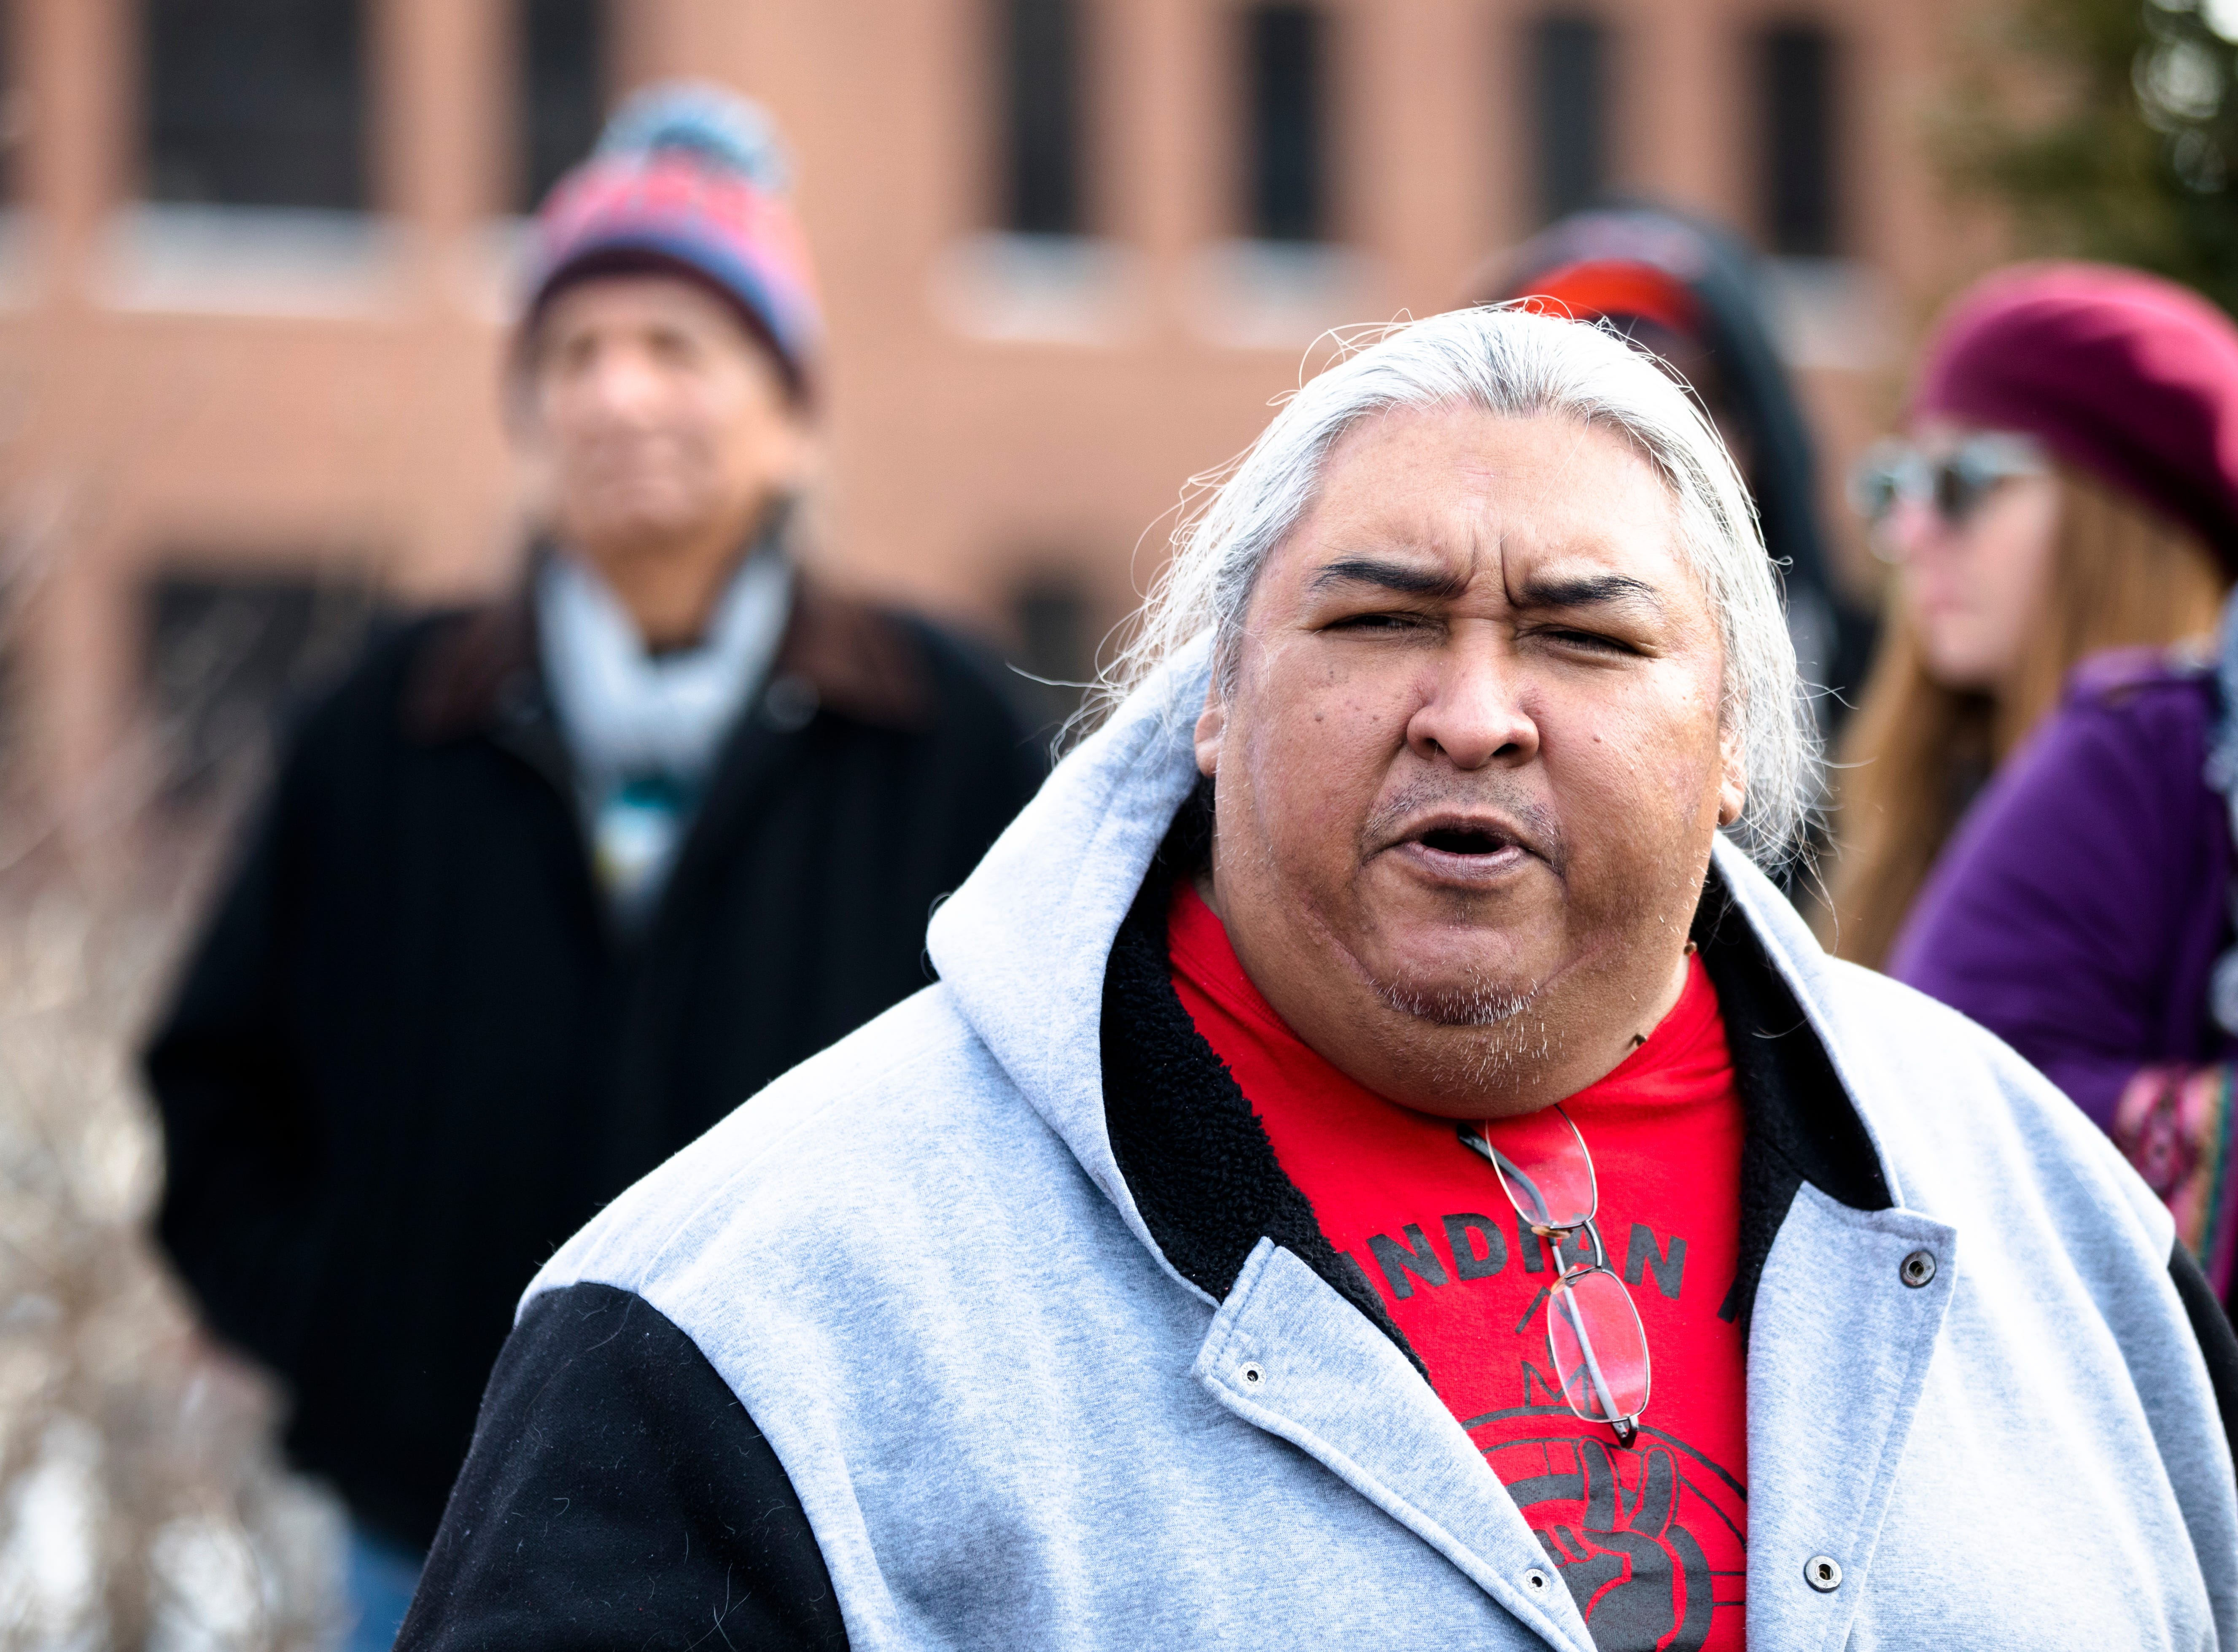 Albert Ortiz speaks during a protest of the Catholic Diocese of Covington outside the Diocese of Covington building in Covington, Kentucky, on Tuesday, Jan. 22, 2019.  The protest was planned by the American Indian Movement in response to incident in Washington DC when students of Covington Catholic High School were filmed in an altercation with a Native American man.